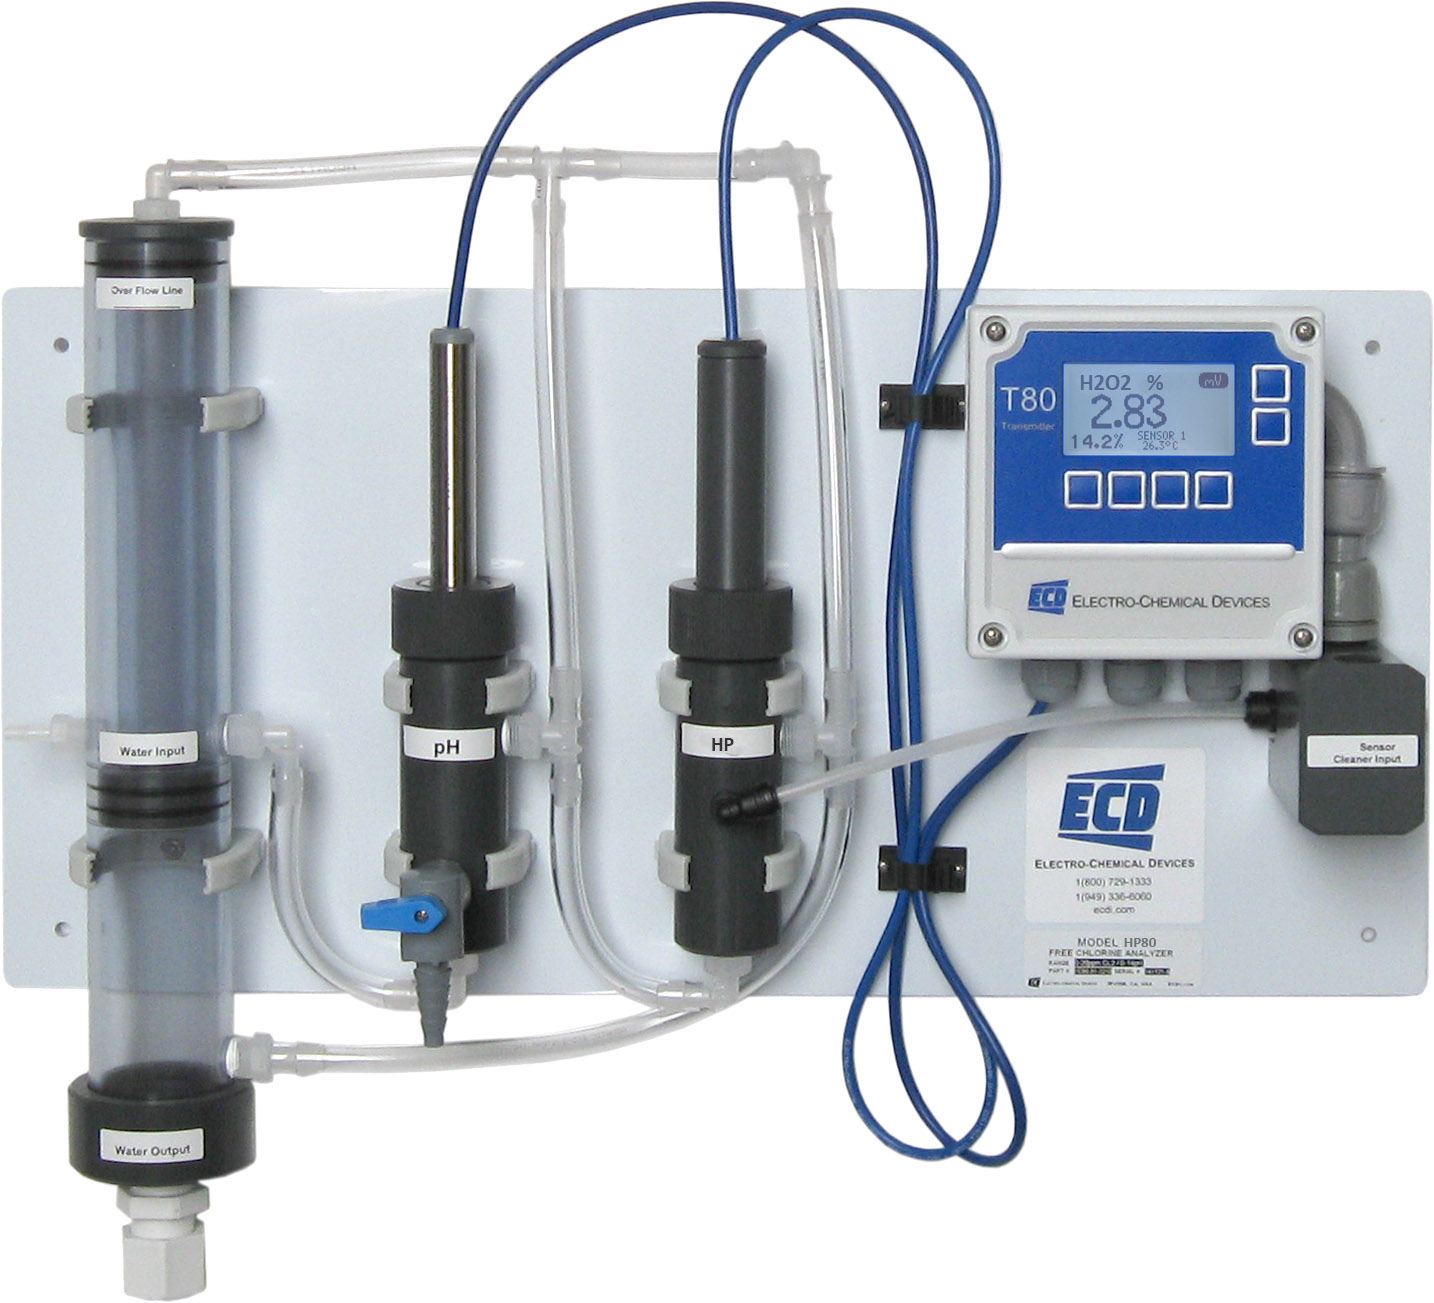 Hydrogen Peroxide Analyzer - HP80 - Electro-Chemical Devices